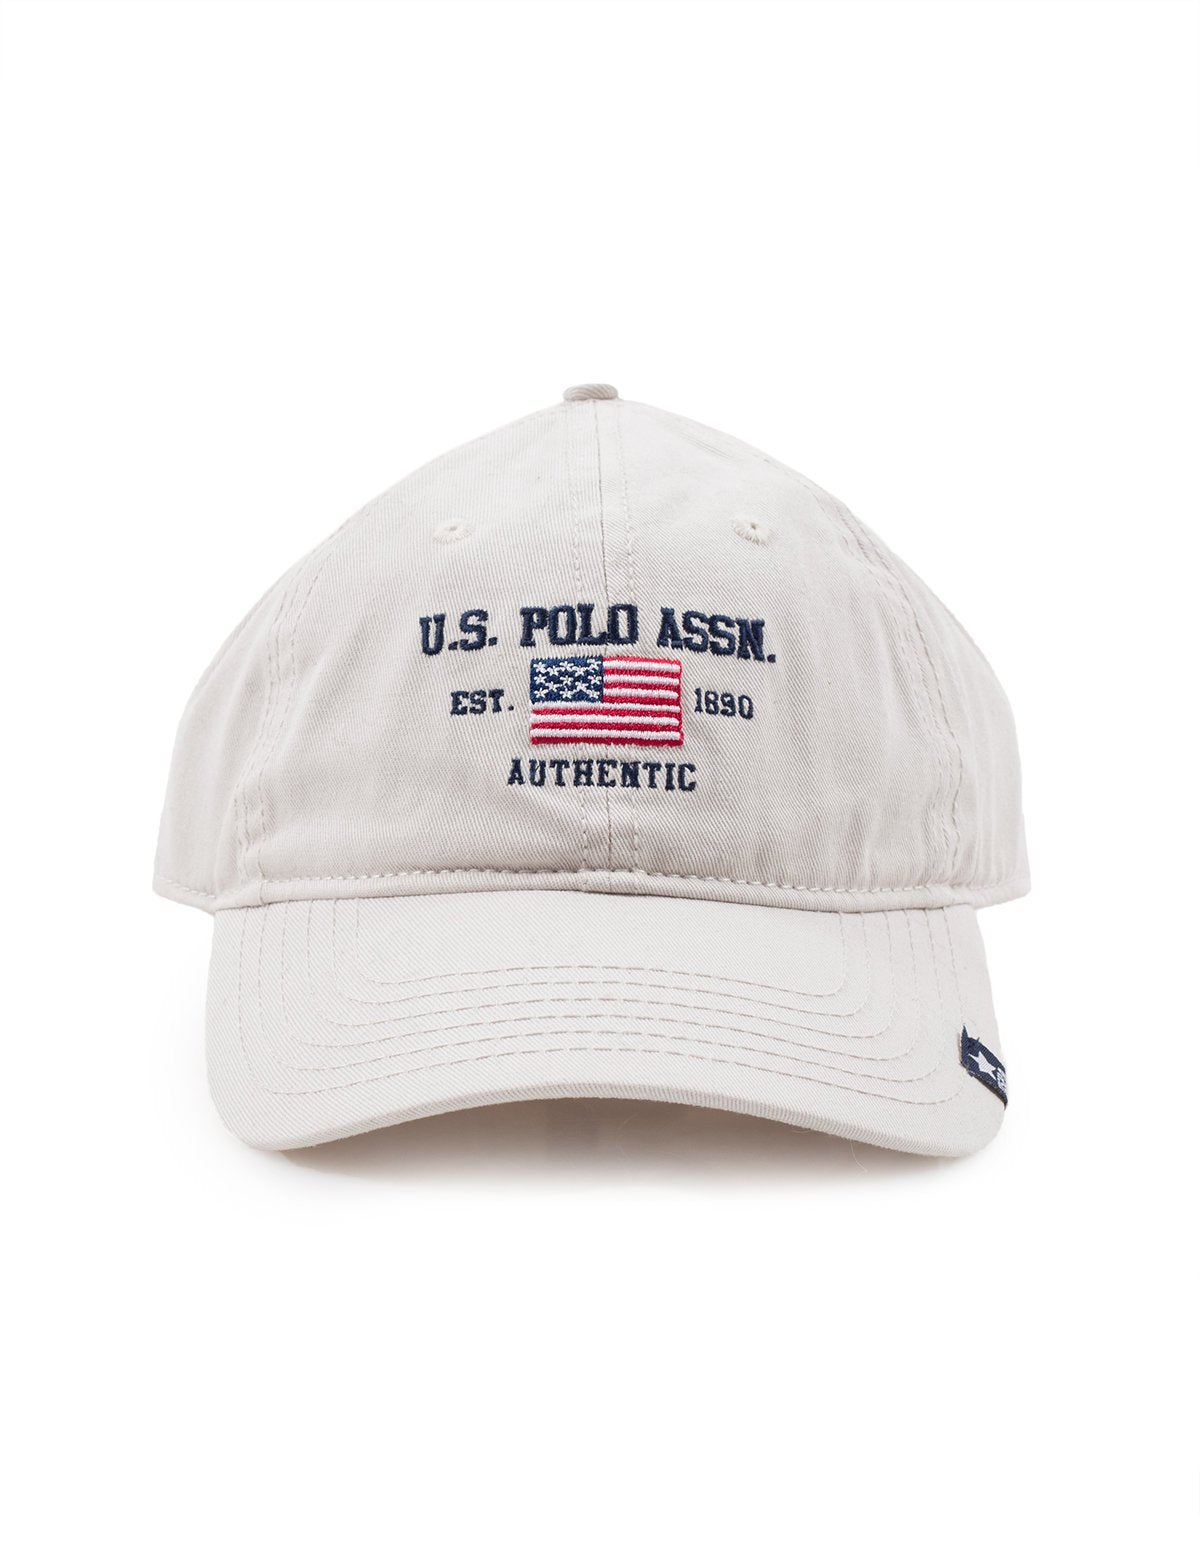 U.S. Polo Assn. Twill Hat - U.S. Polo Assn.